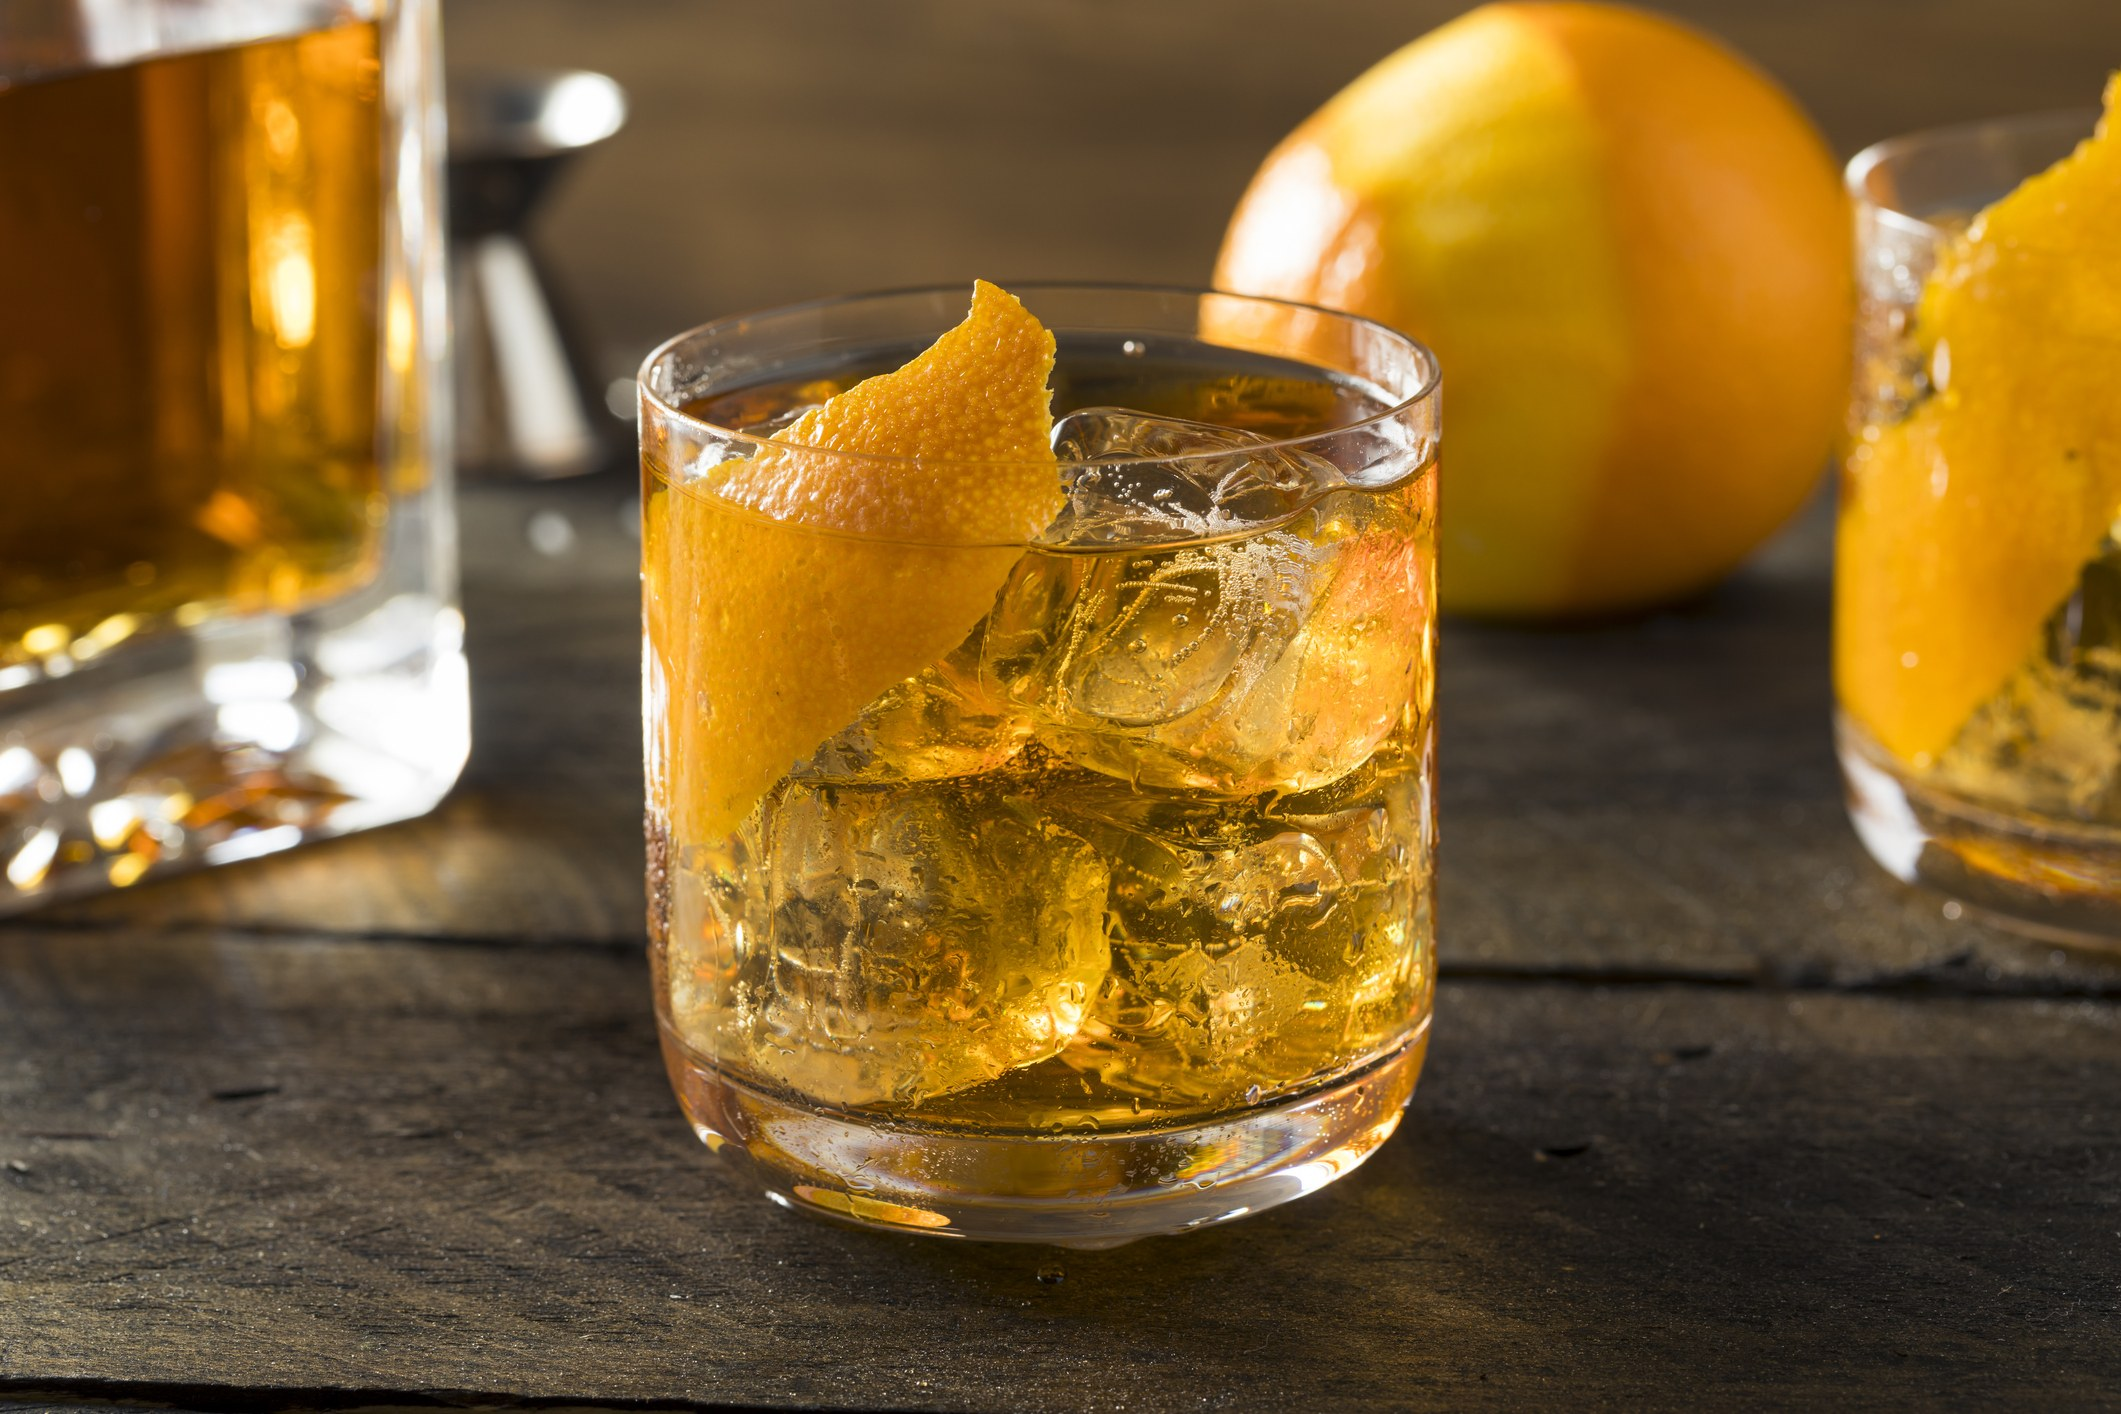 Homemade Old Fashioned Bourbon on the Rocks with an Orange Garnish